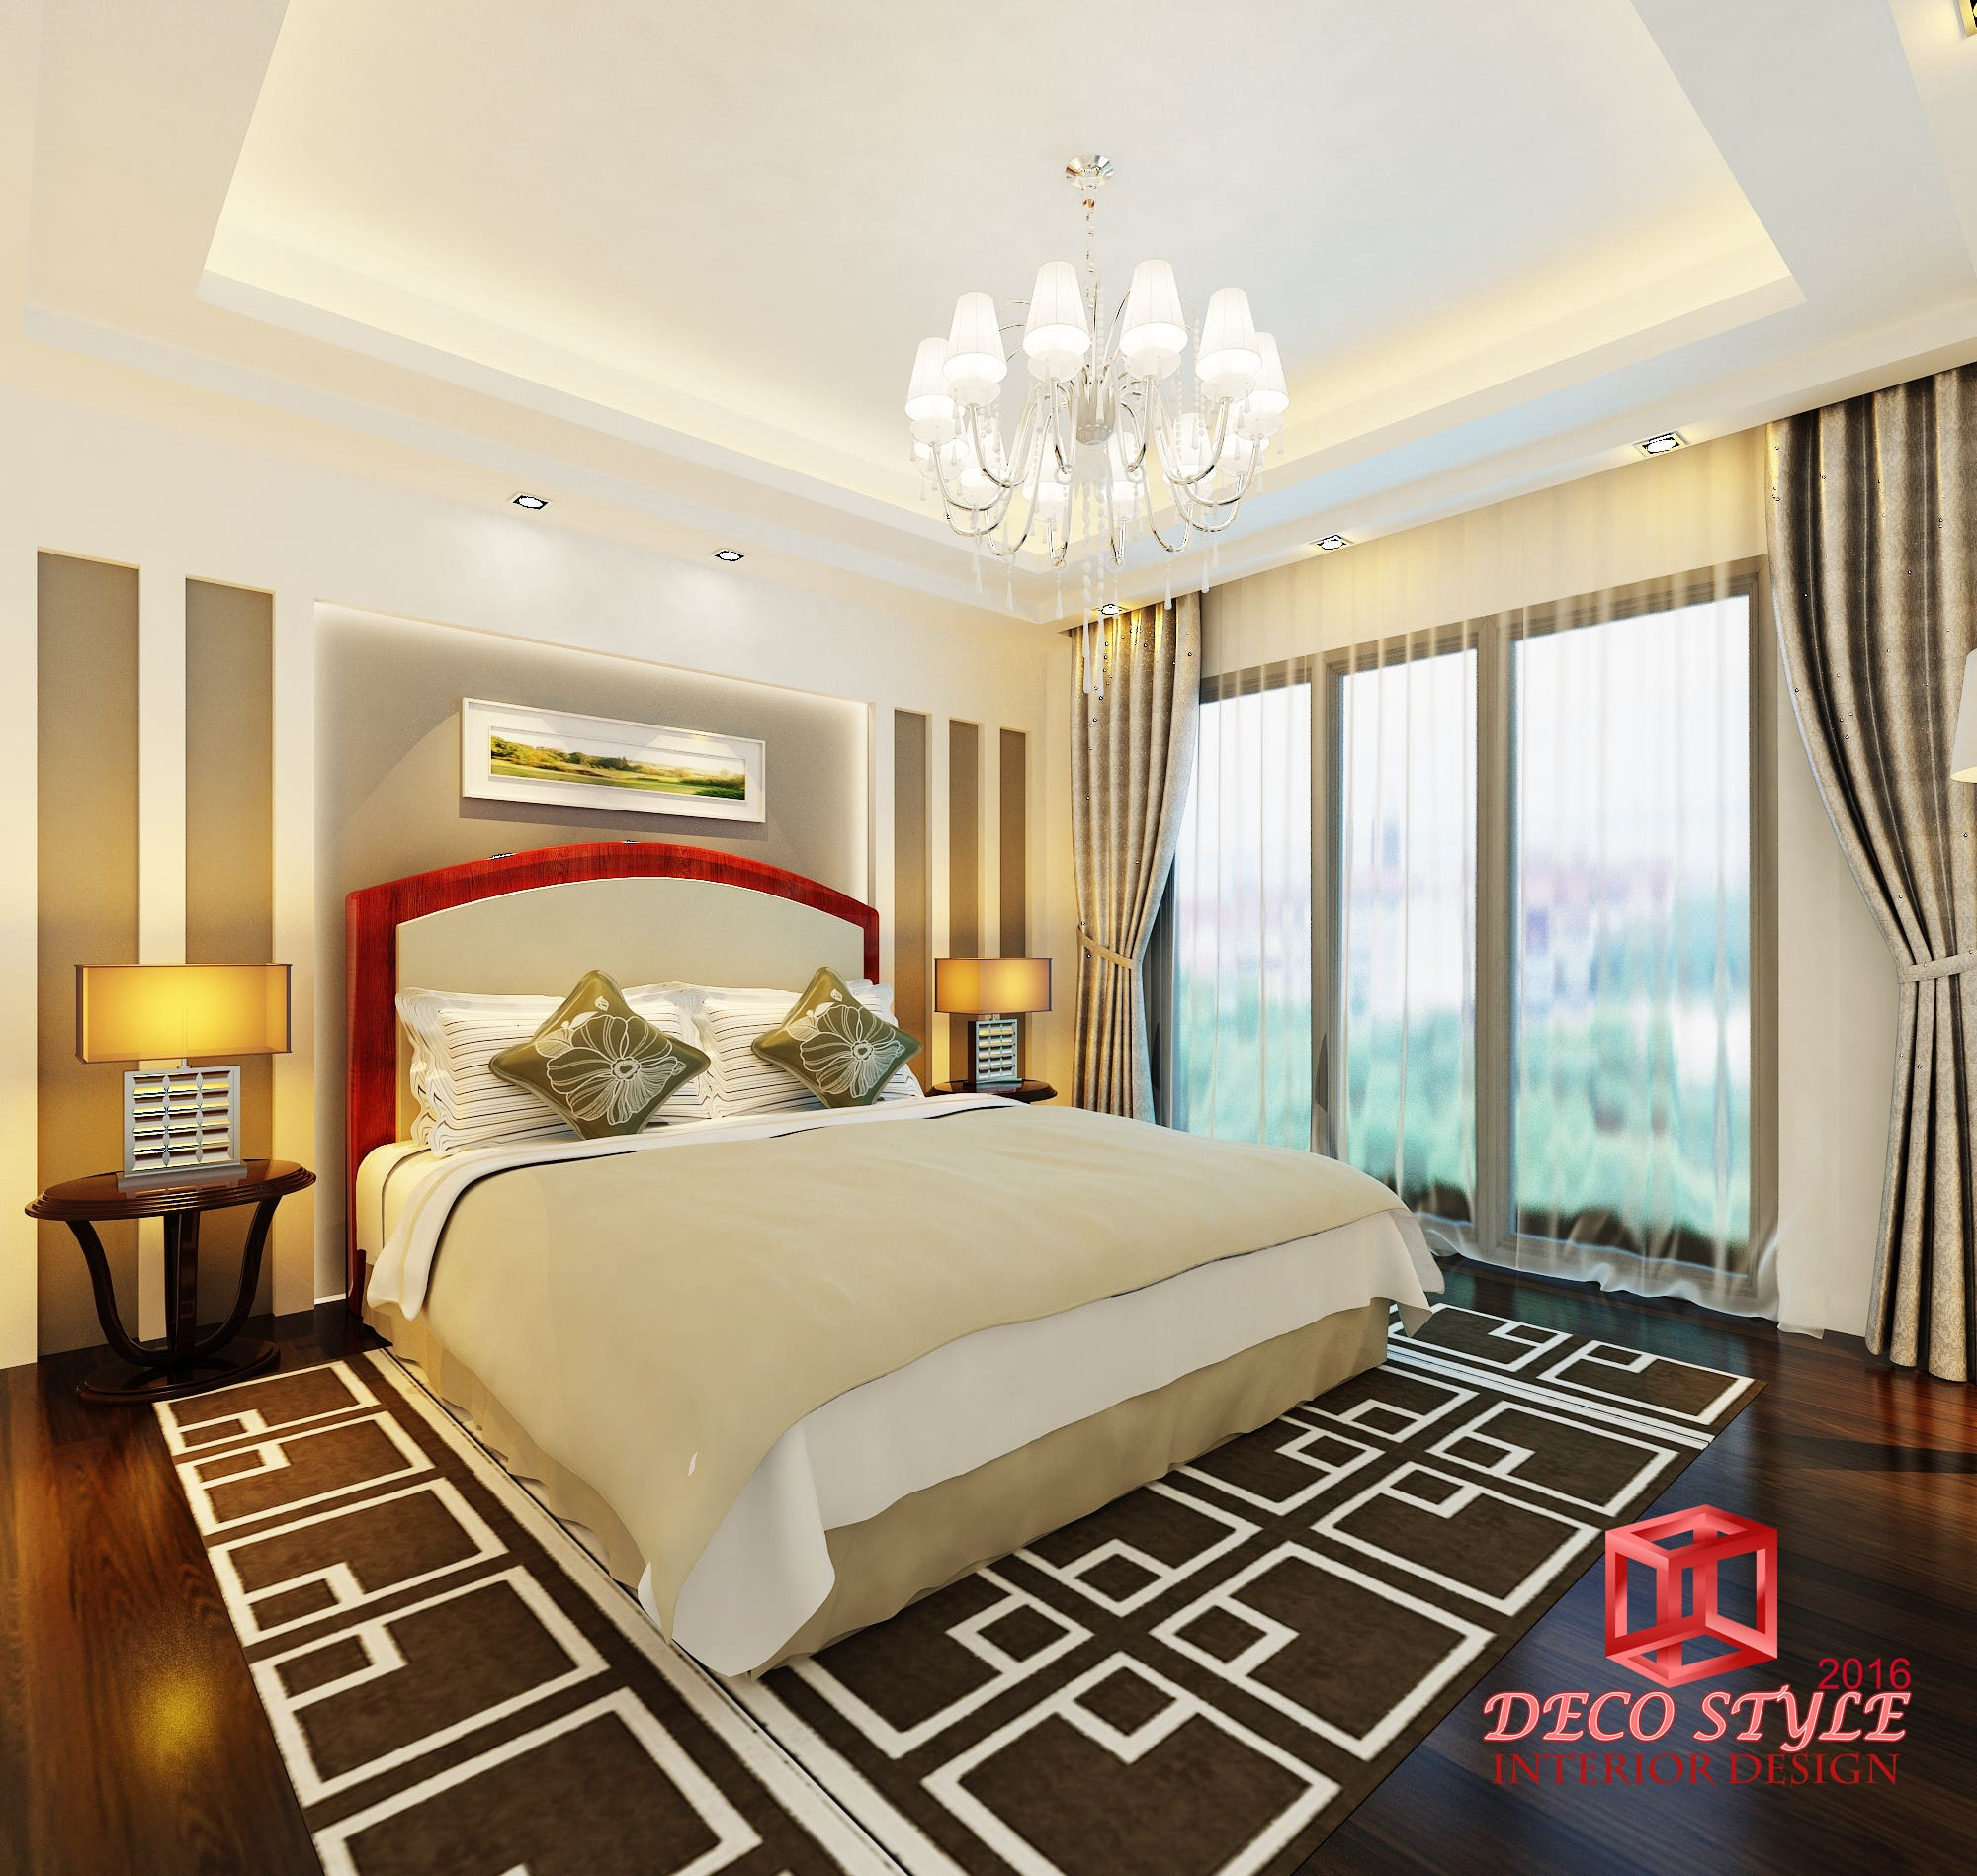 Bed Room Model. INDONESIA